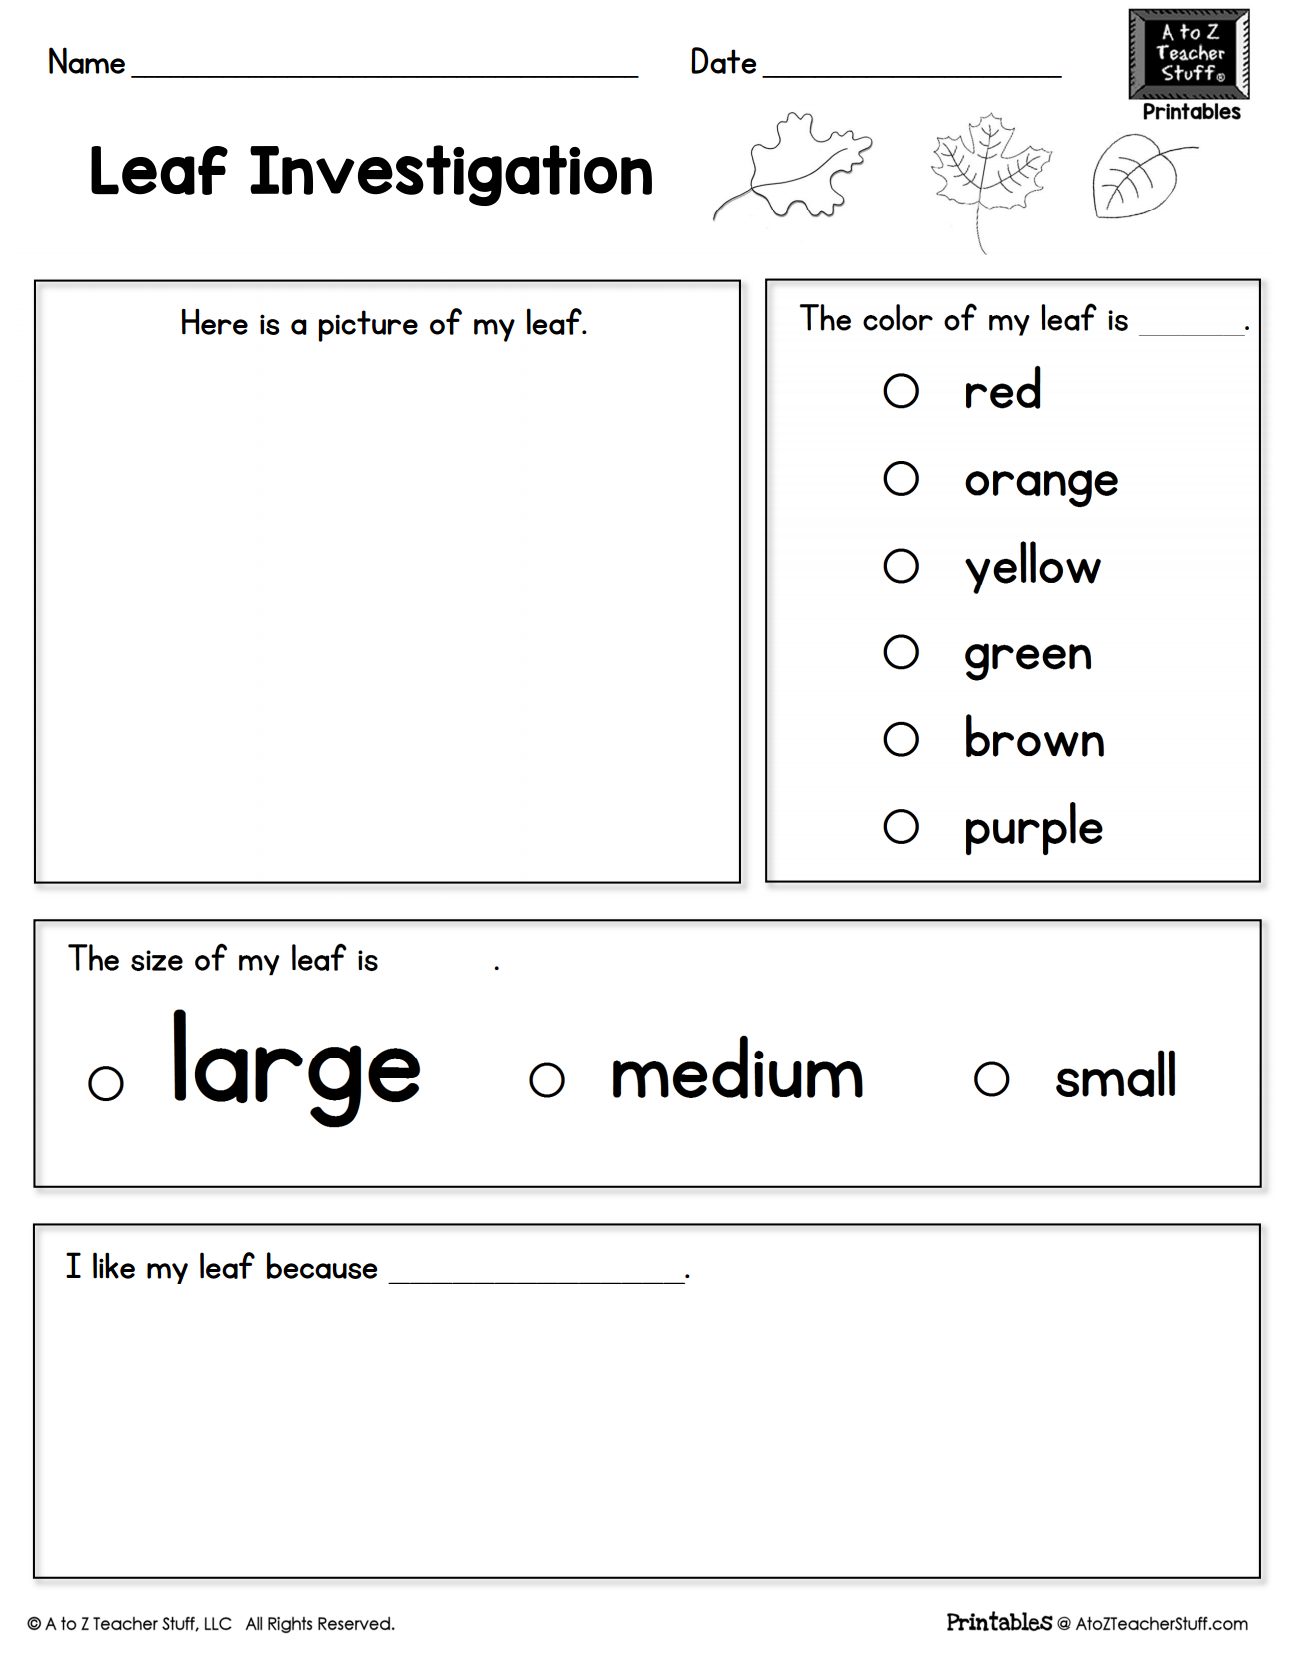 Leaf Investigation Printable Worksheet | A to Z Teacher ...